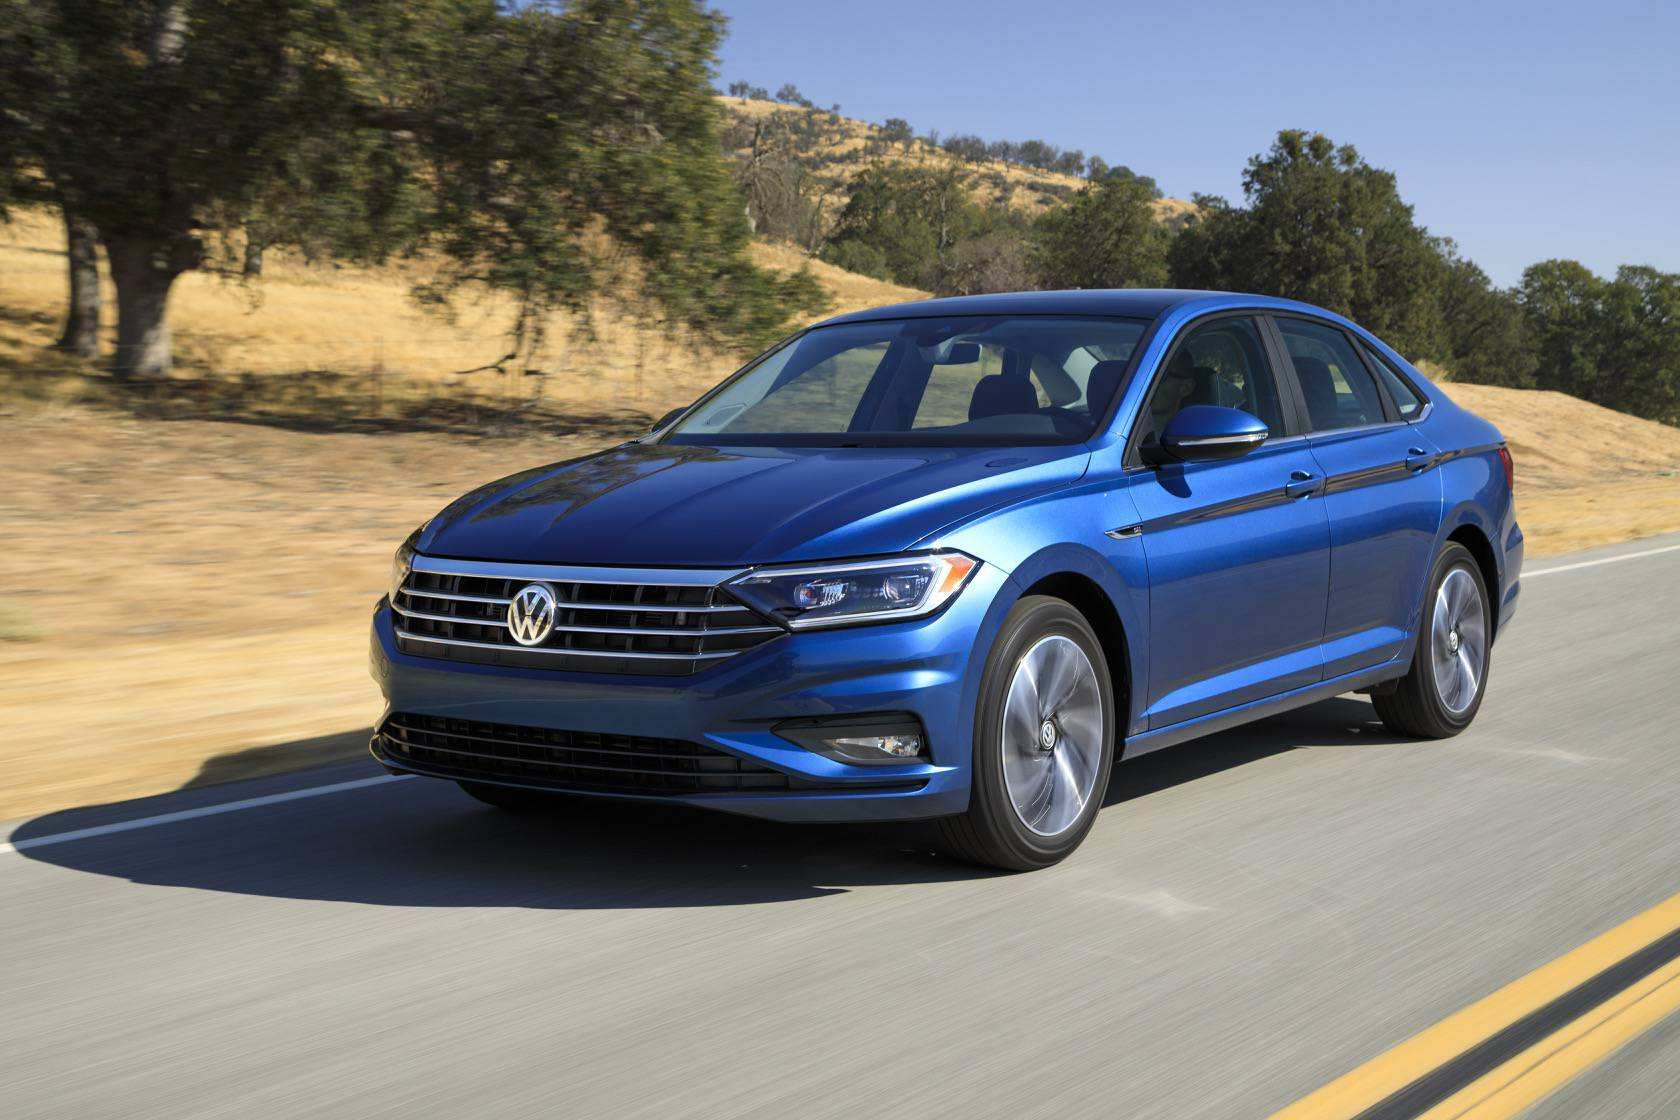 98 Best Review 2019 Vw Jetta Tdi Gli History for 2019 Vw Jetta Tdi Gli